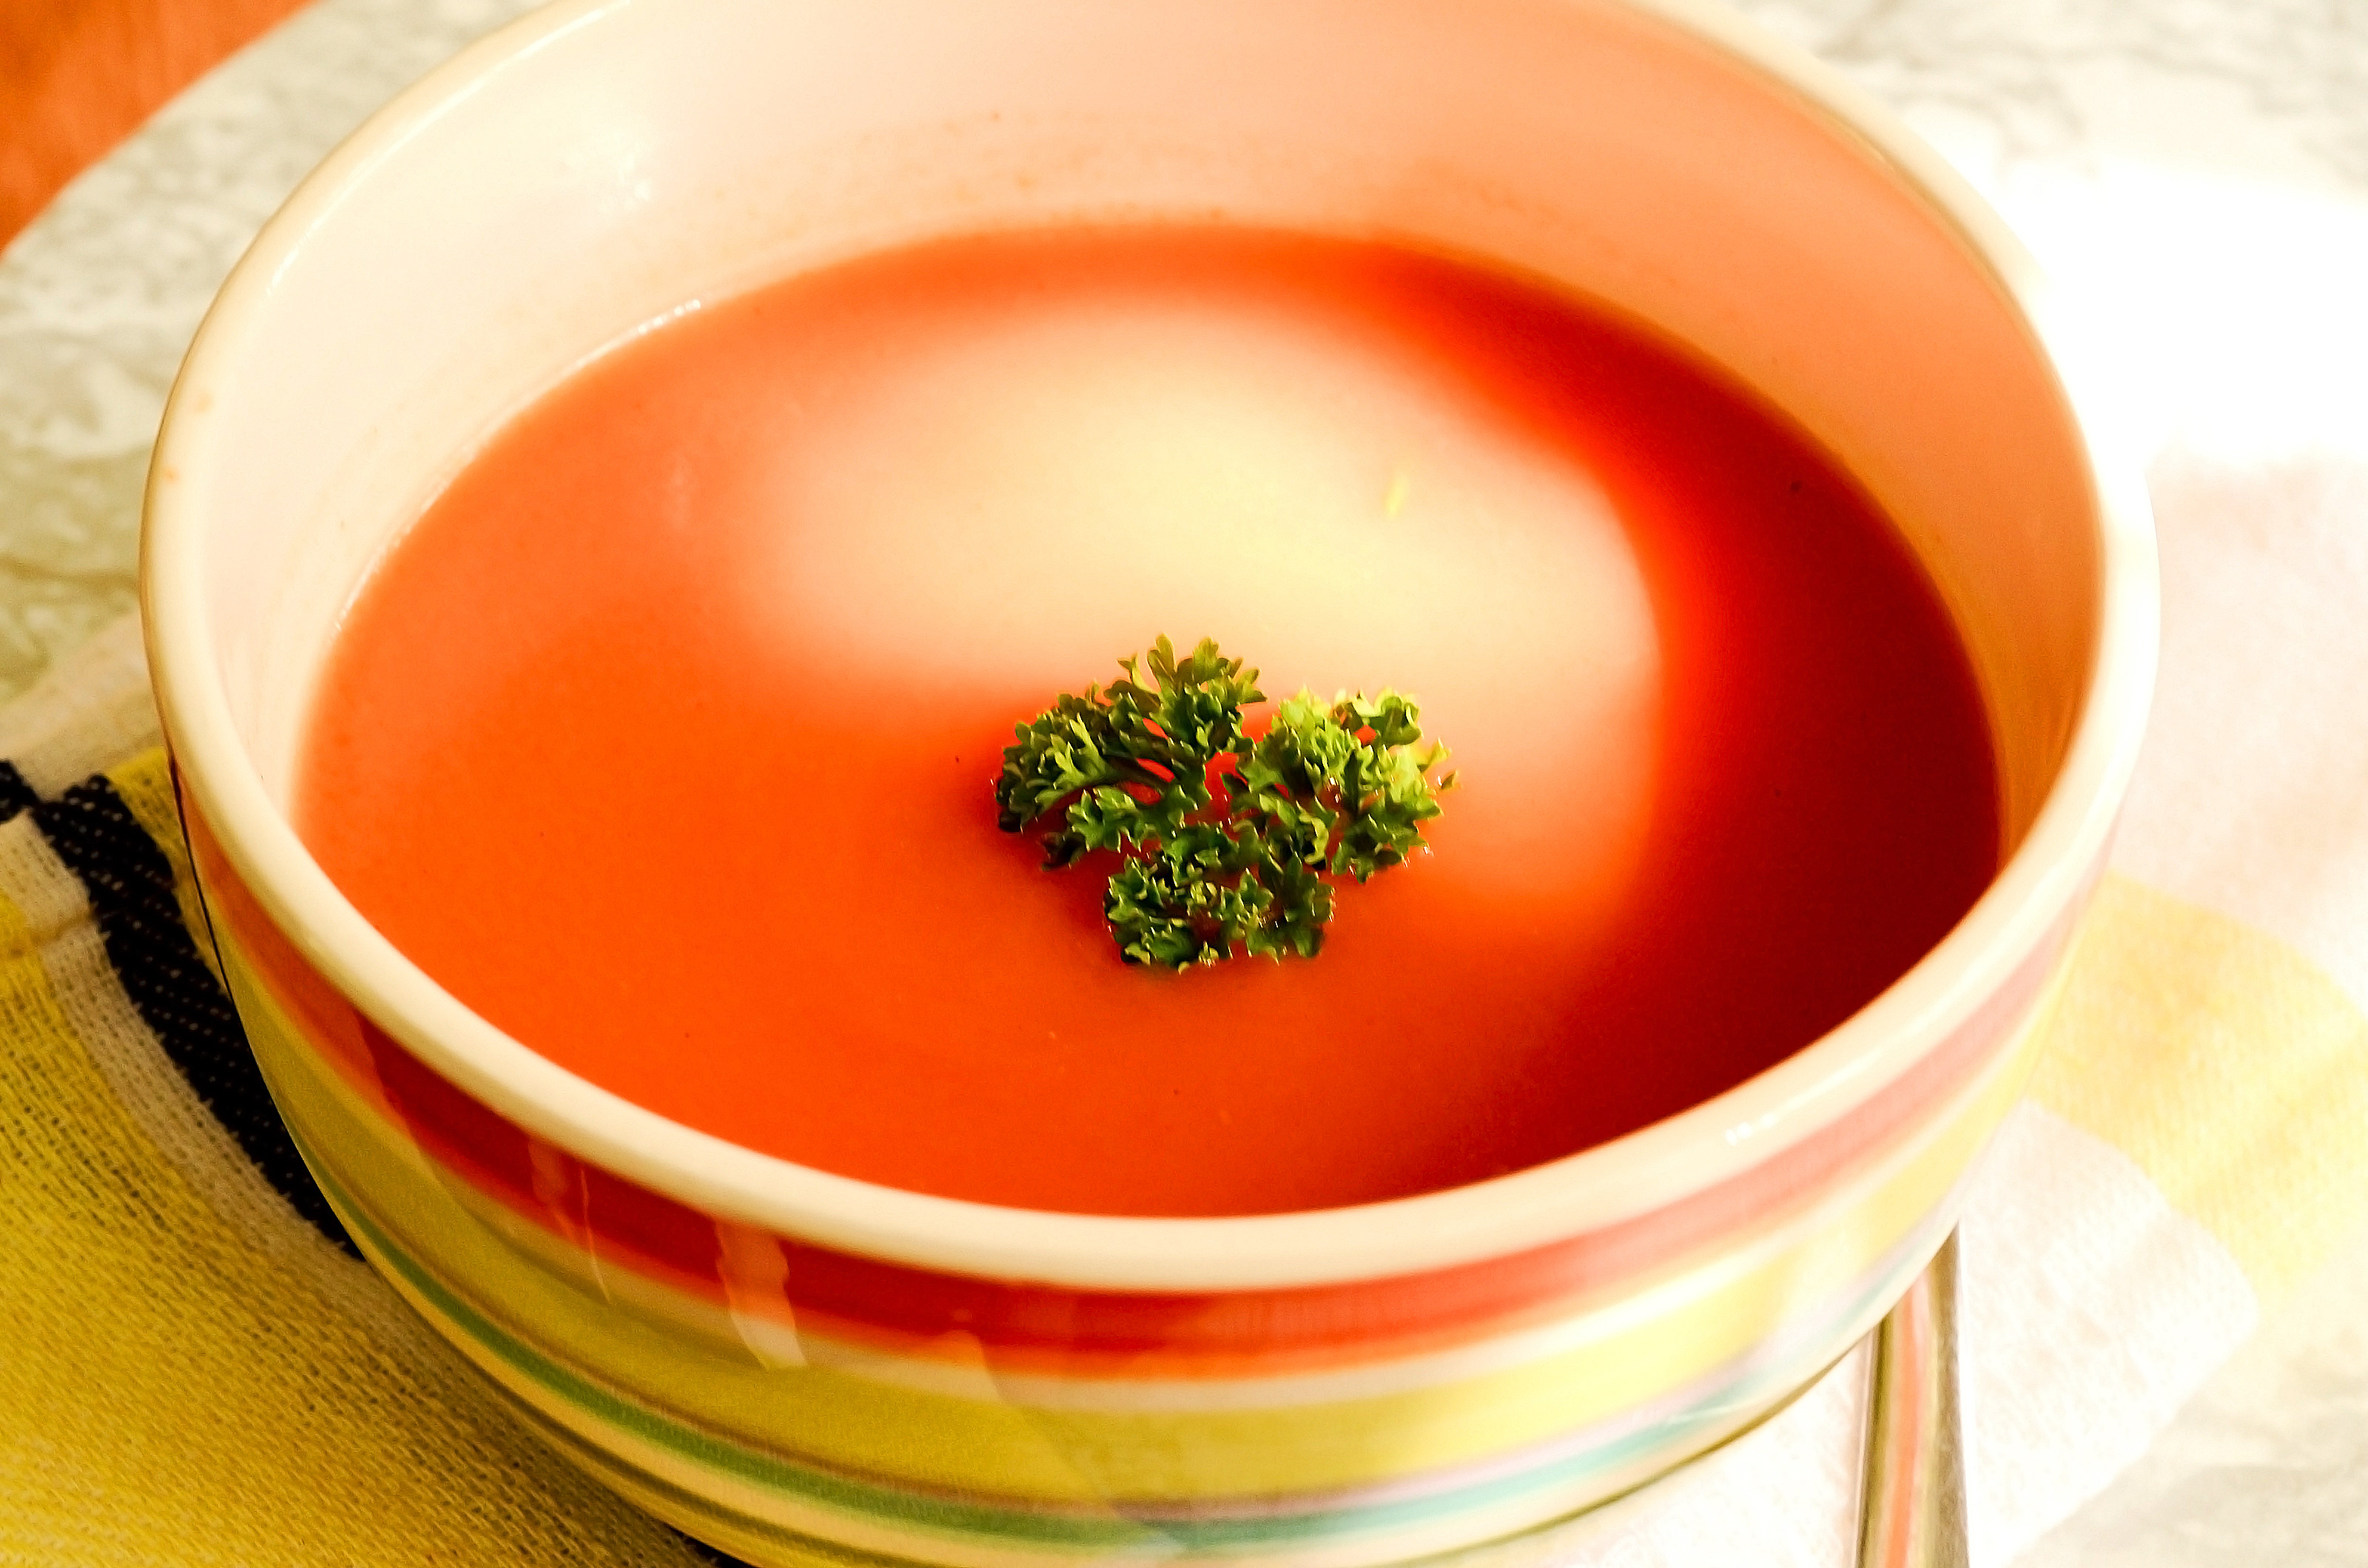 How To Make Tomato Soup  How to Make Turkish Tomato Soup 13 Steps with